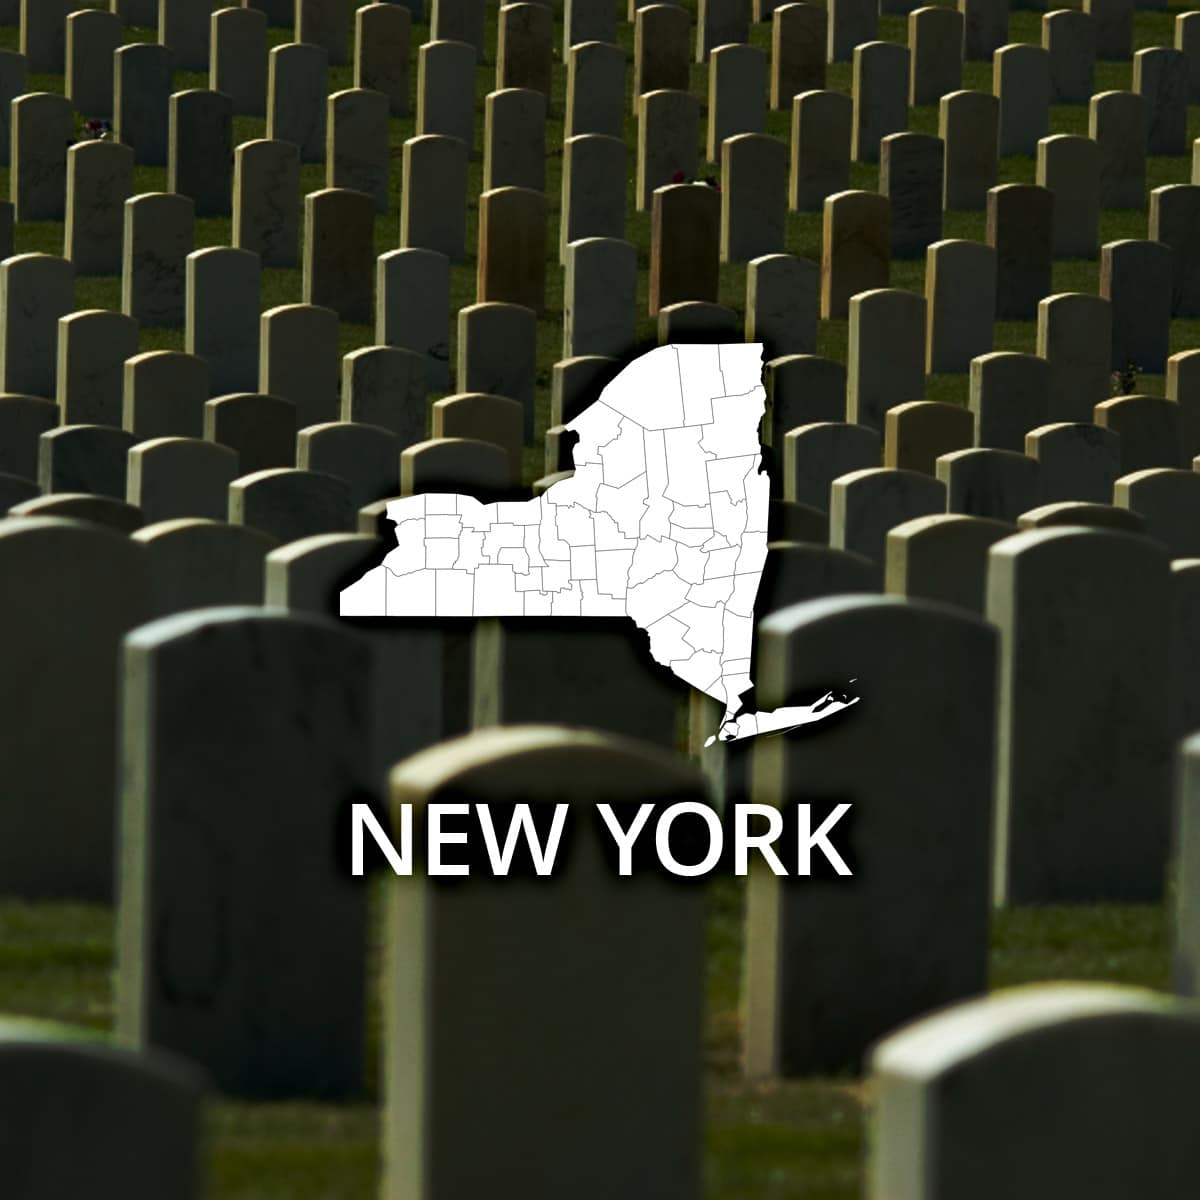 Where to Obtain a New York Death Certificate